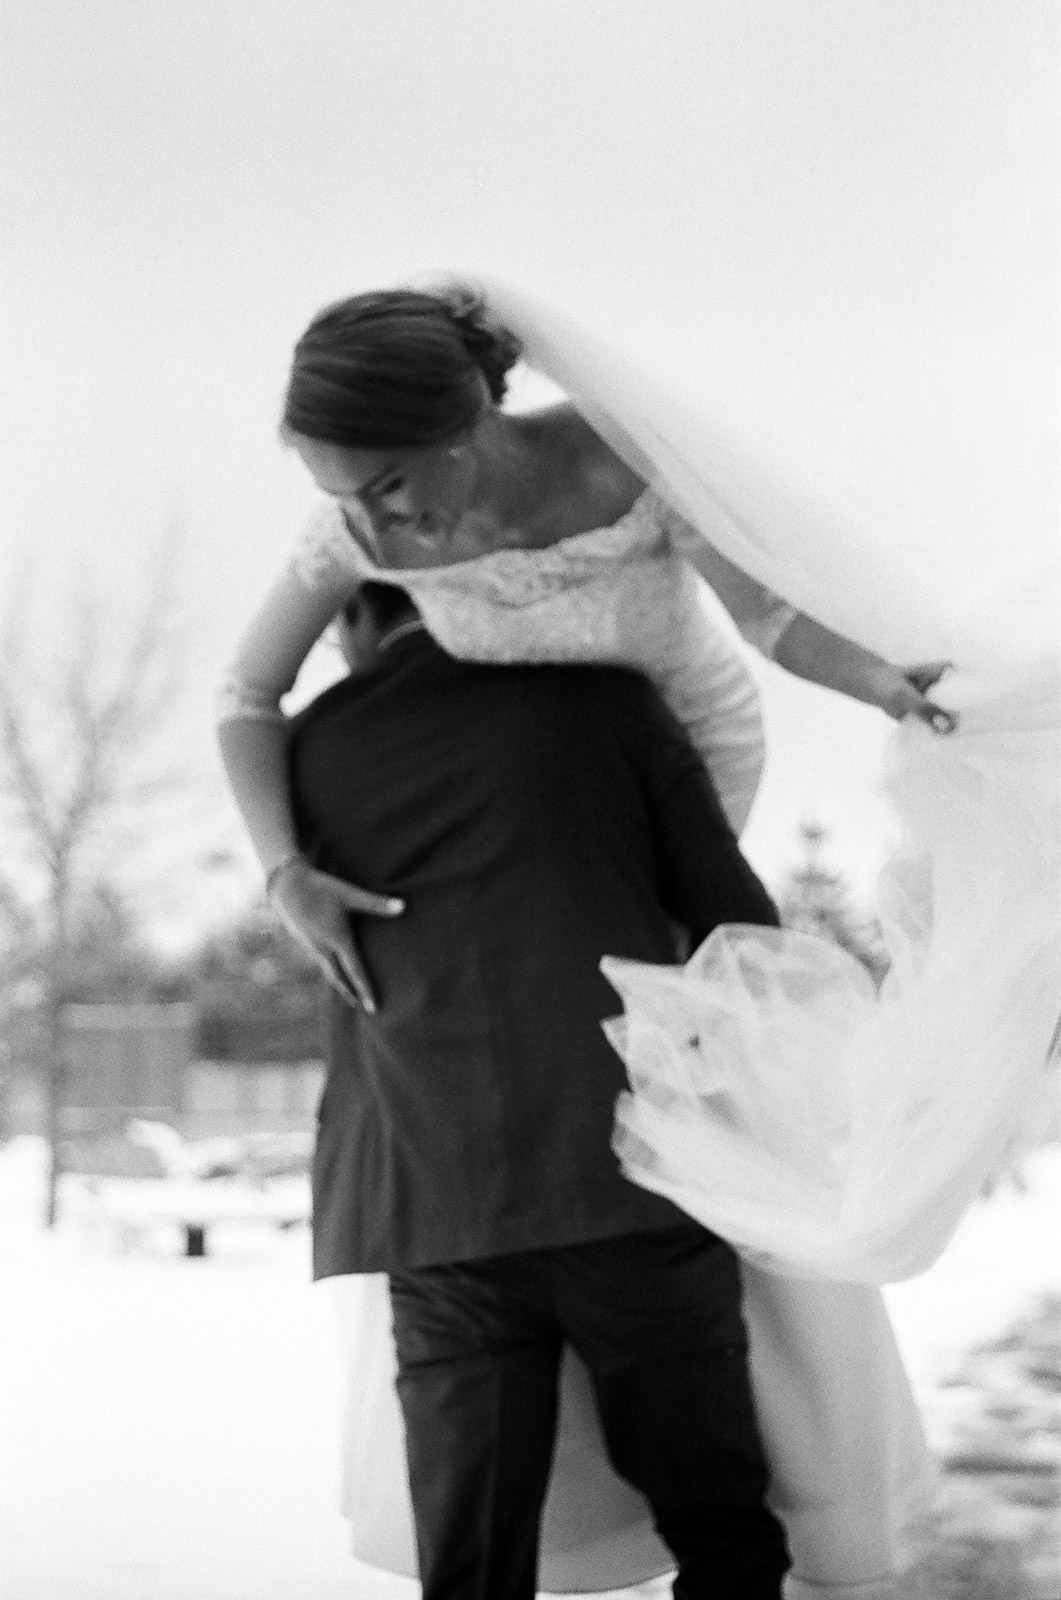 Black-and-white photograph Groom carrying his bride on their wedding day in Snowy Mountains of Albuquerque New Mexico